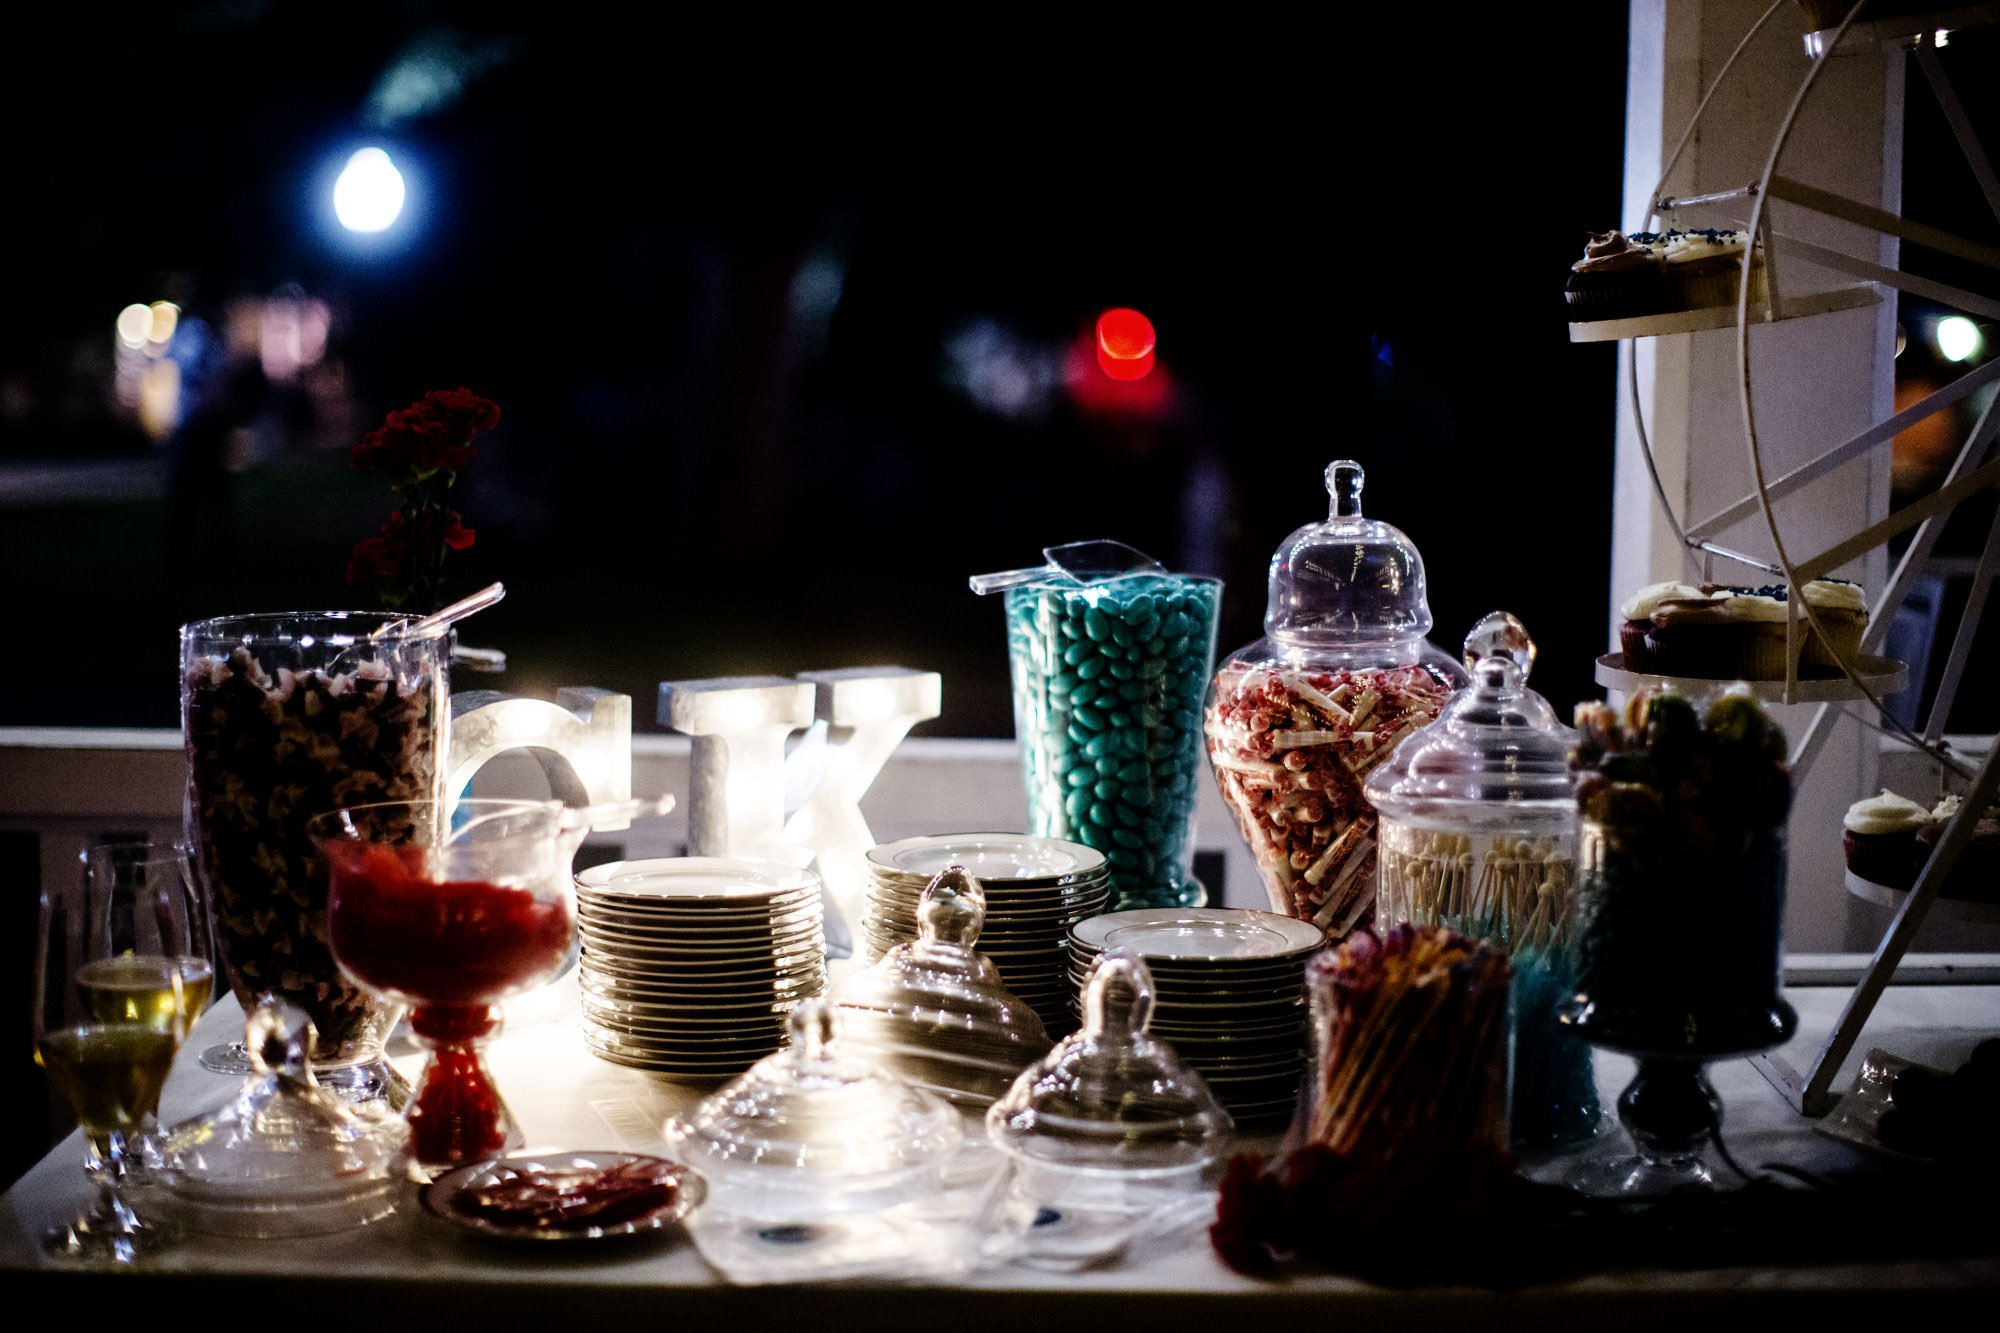 Details of the candy bar.